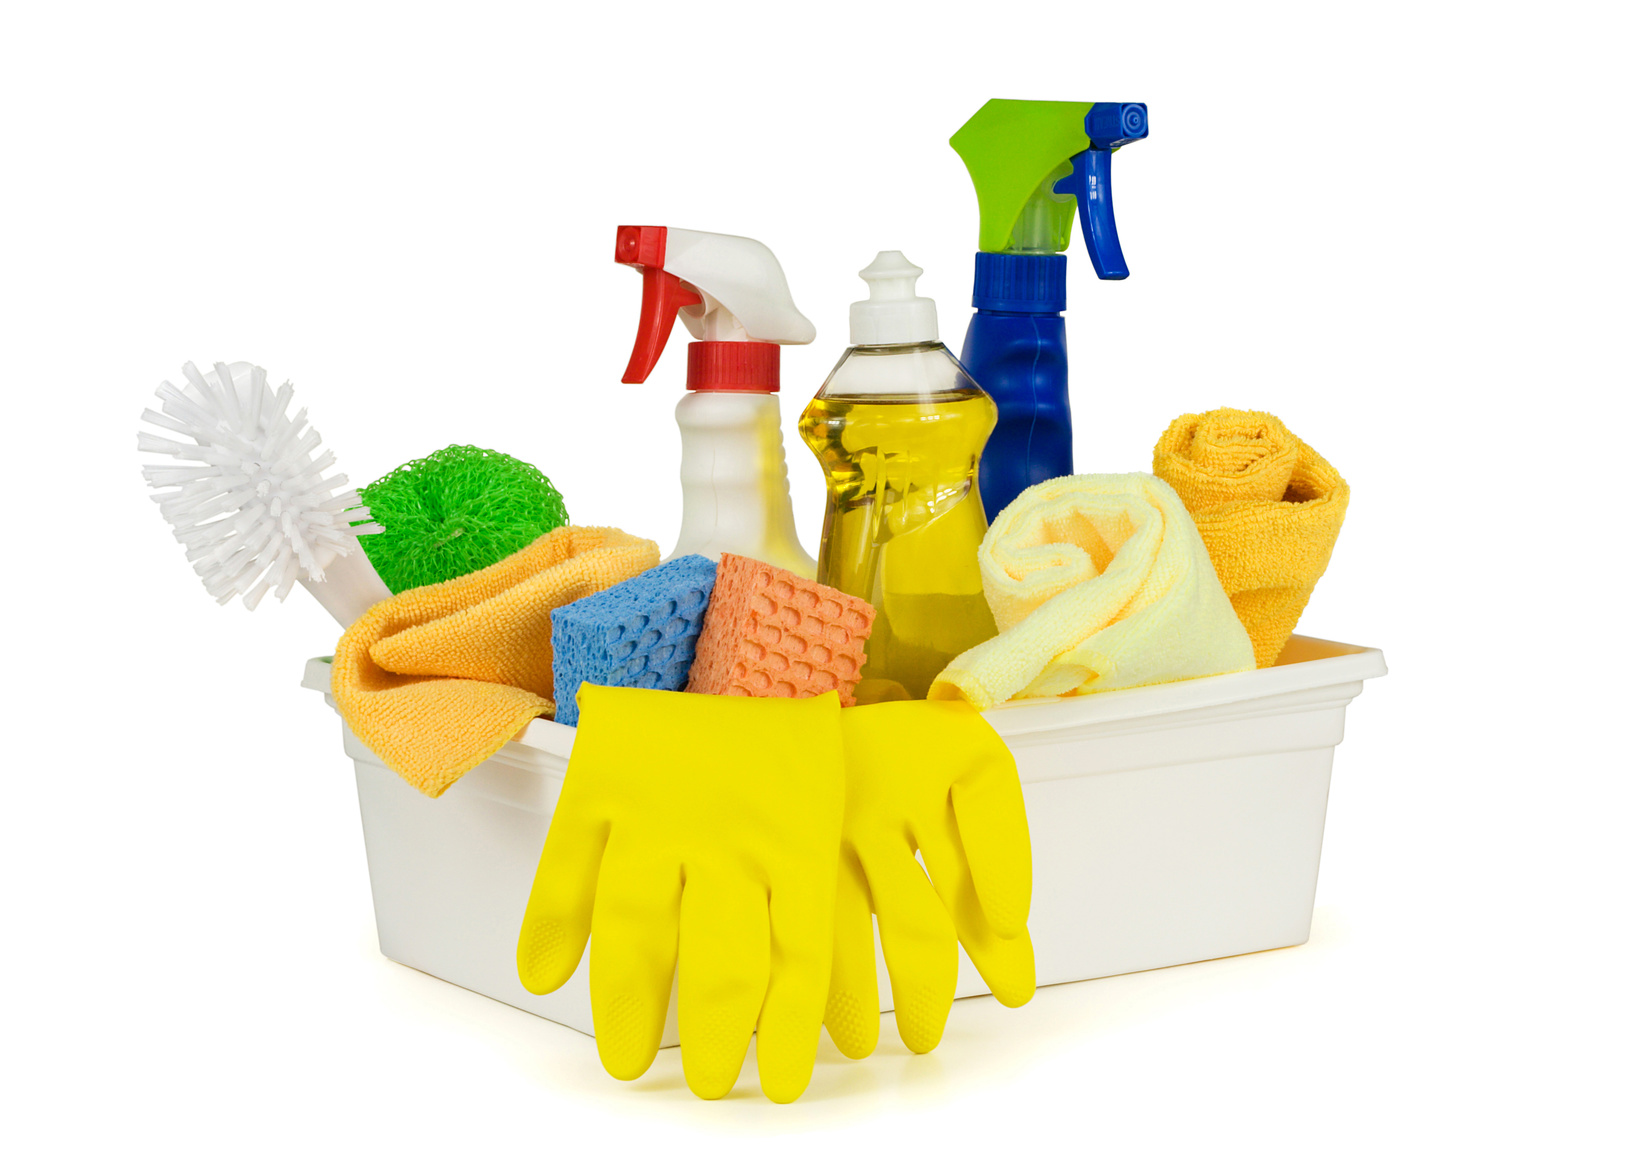 Cleaning equipment's on a white background